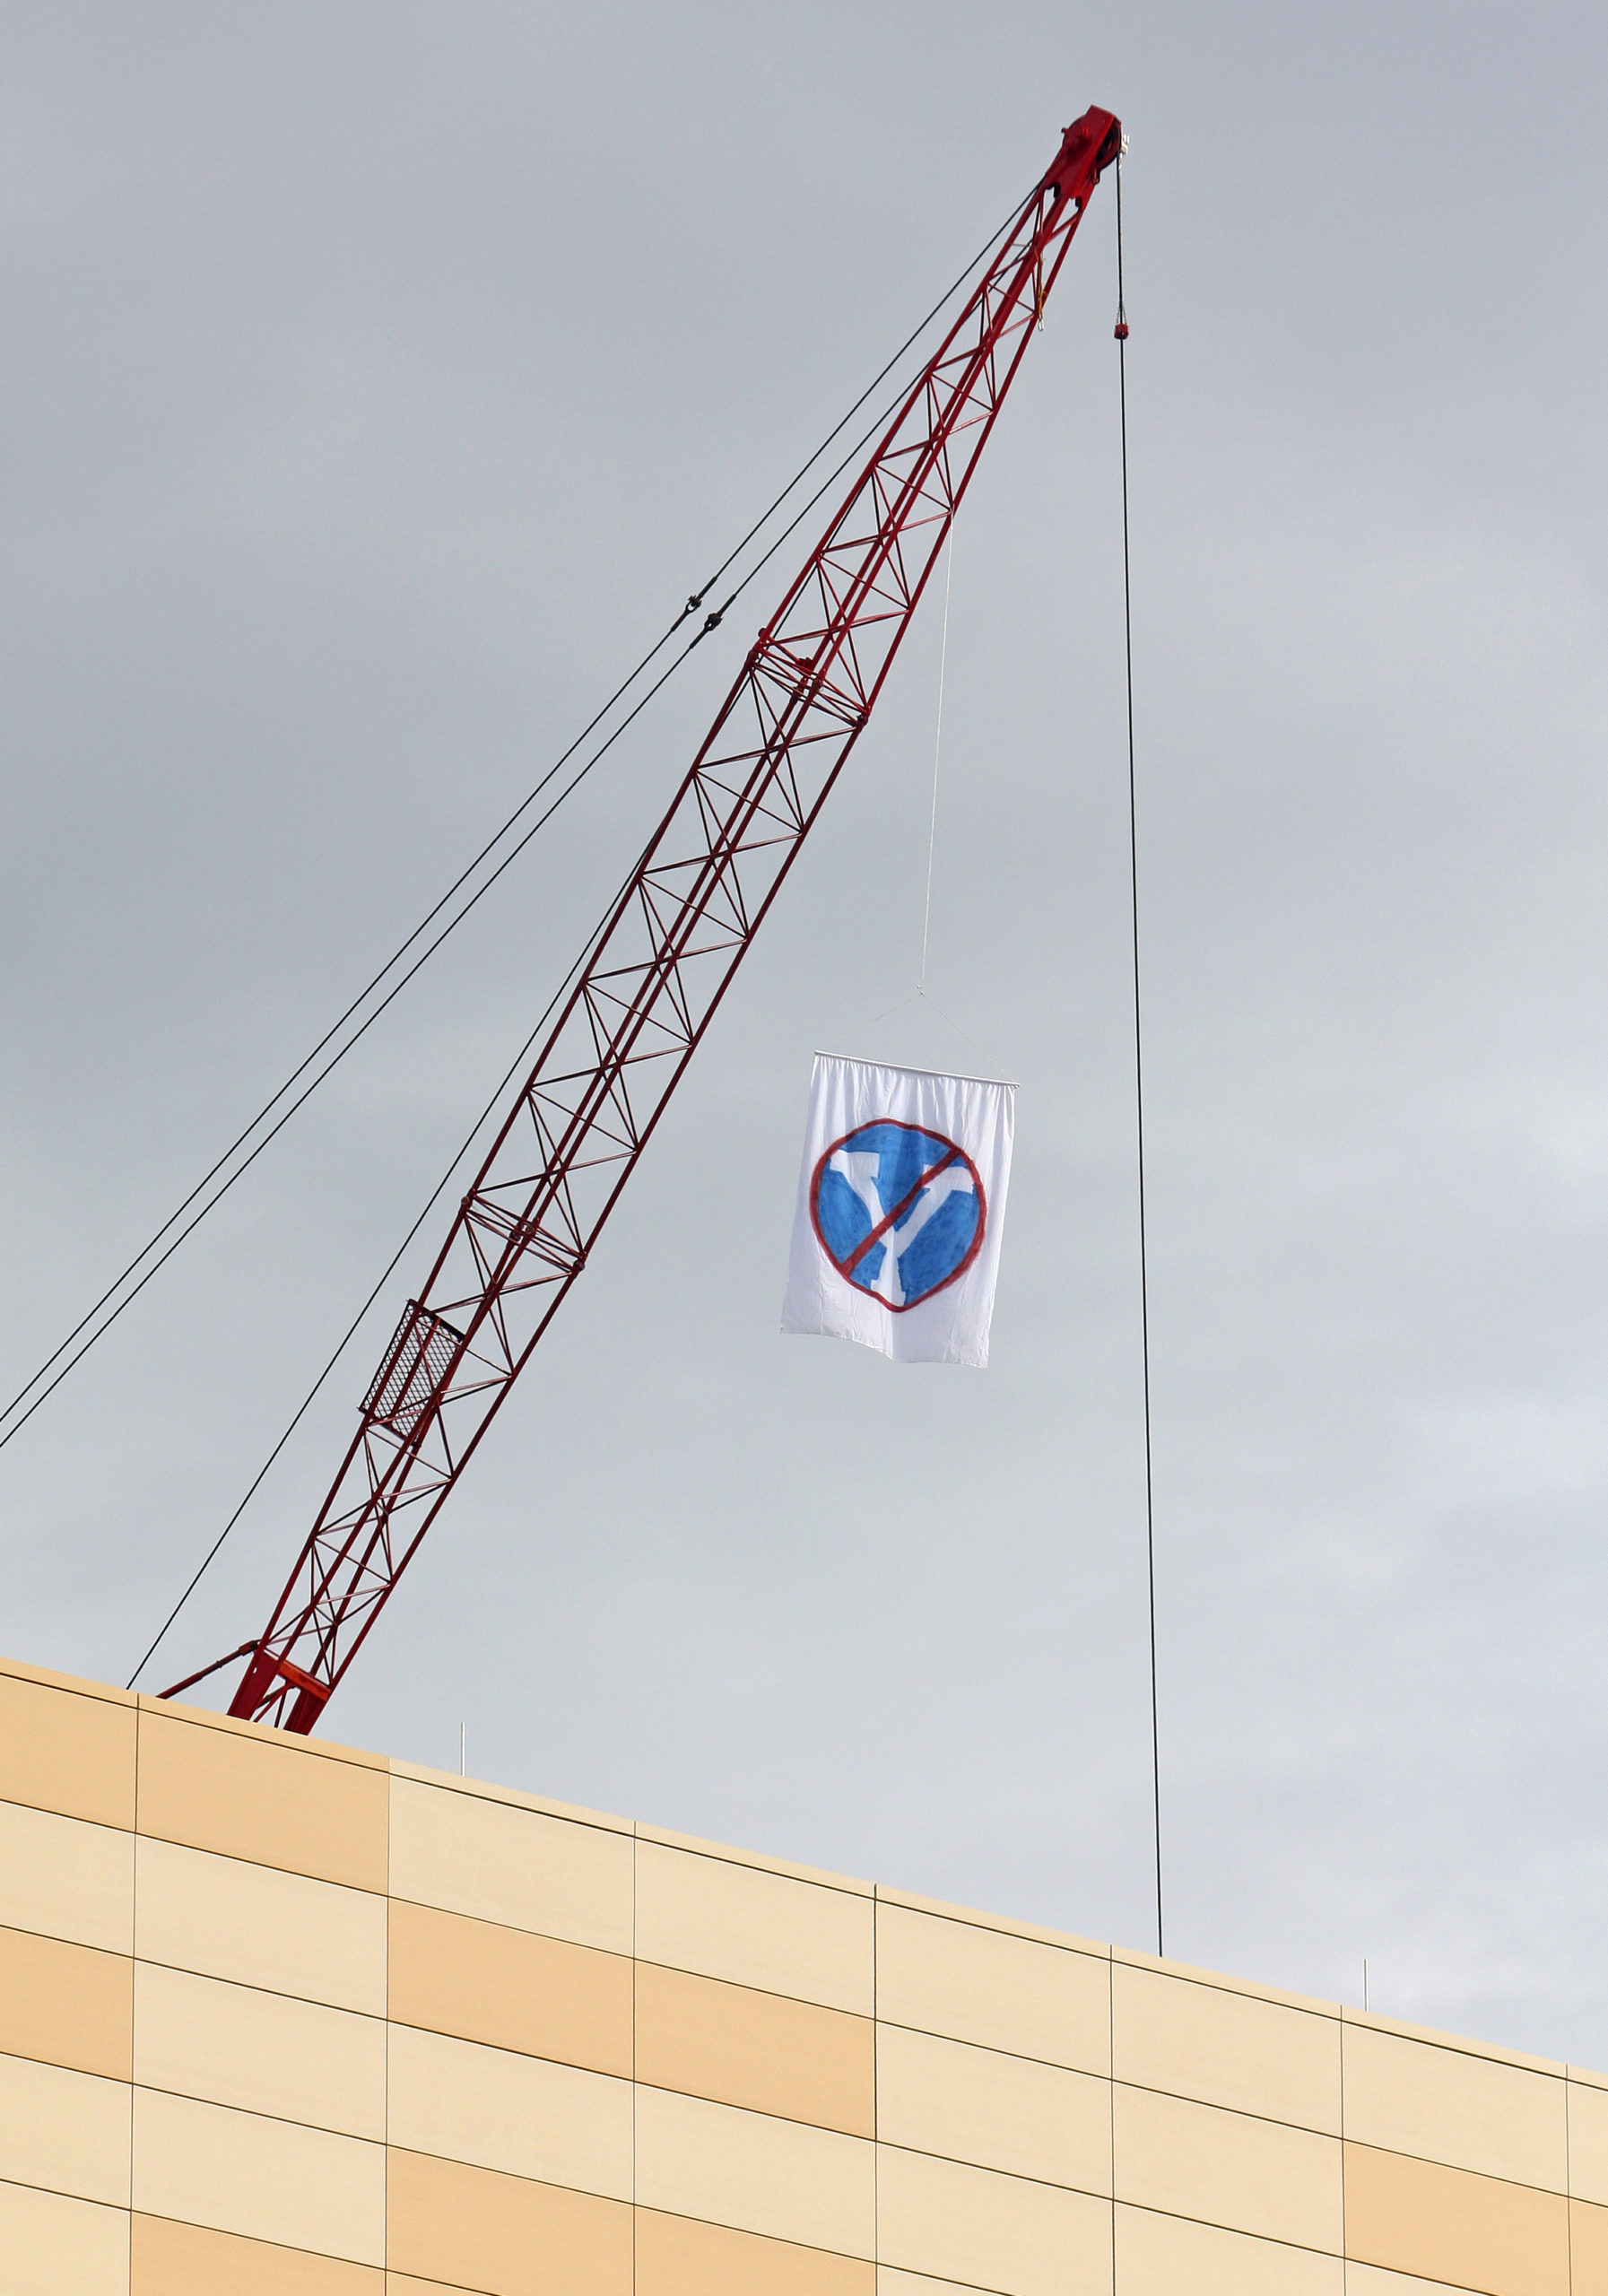 An anti-BYU flag hangs from a crane near the Huntsman School of Business in 2013.